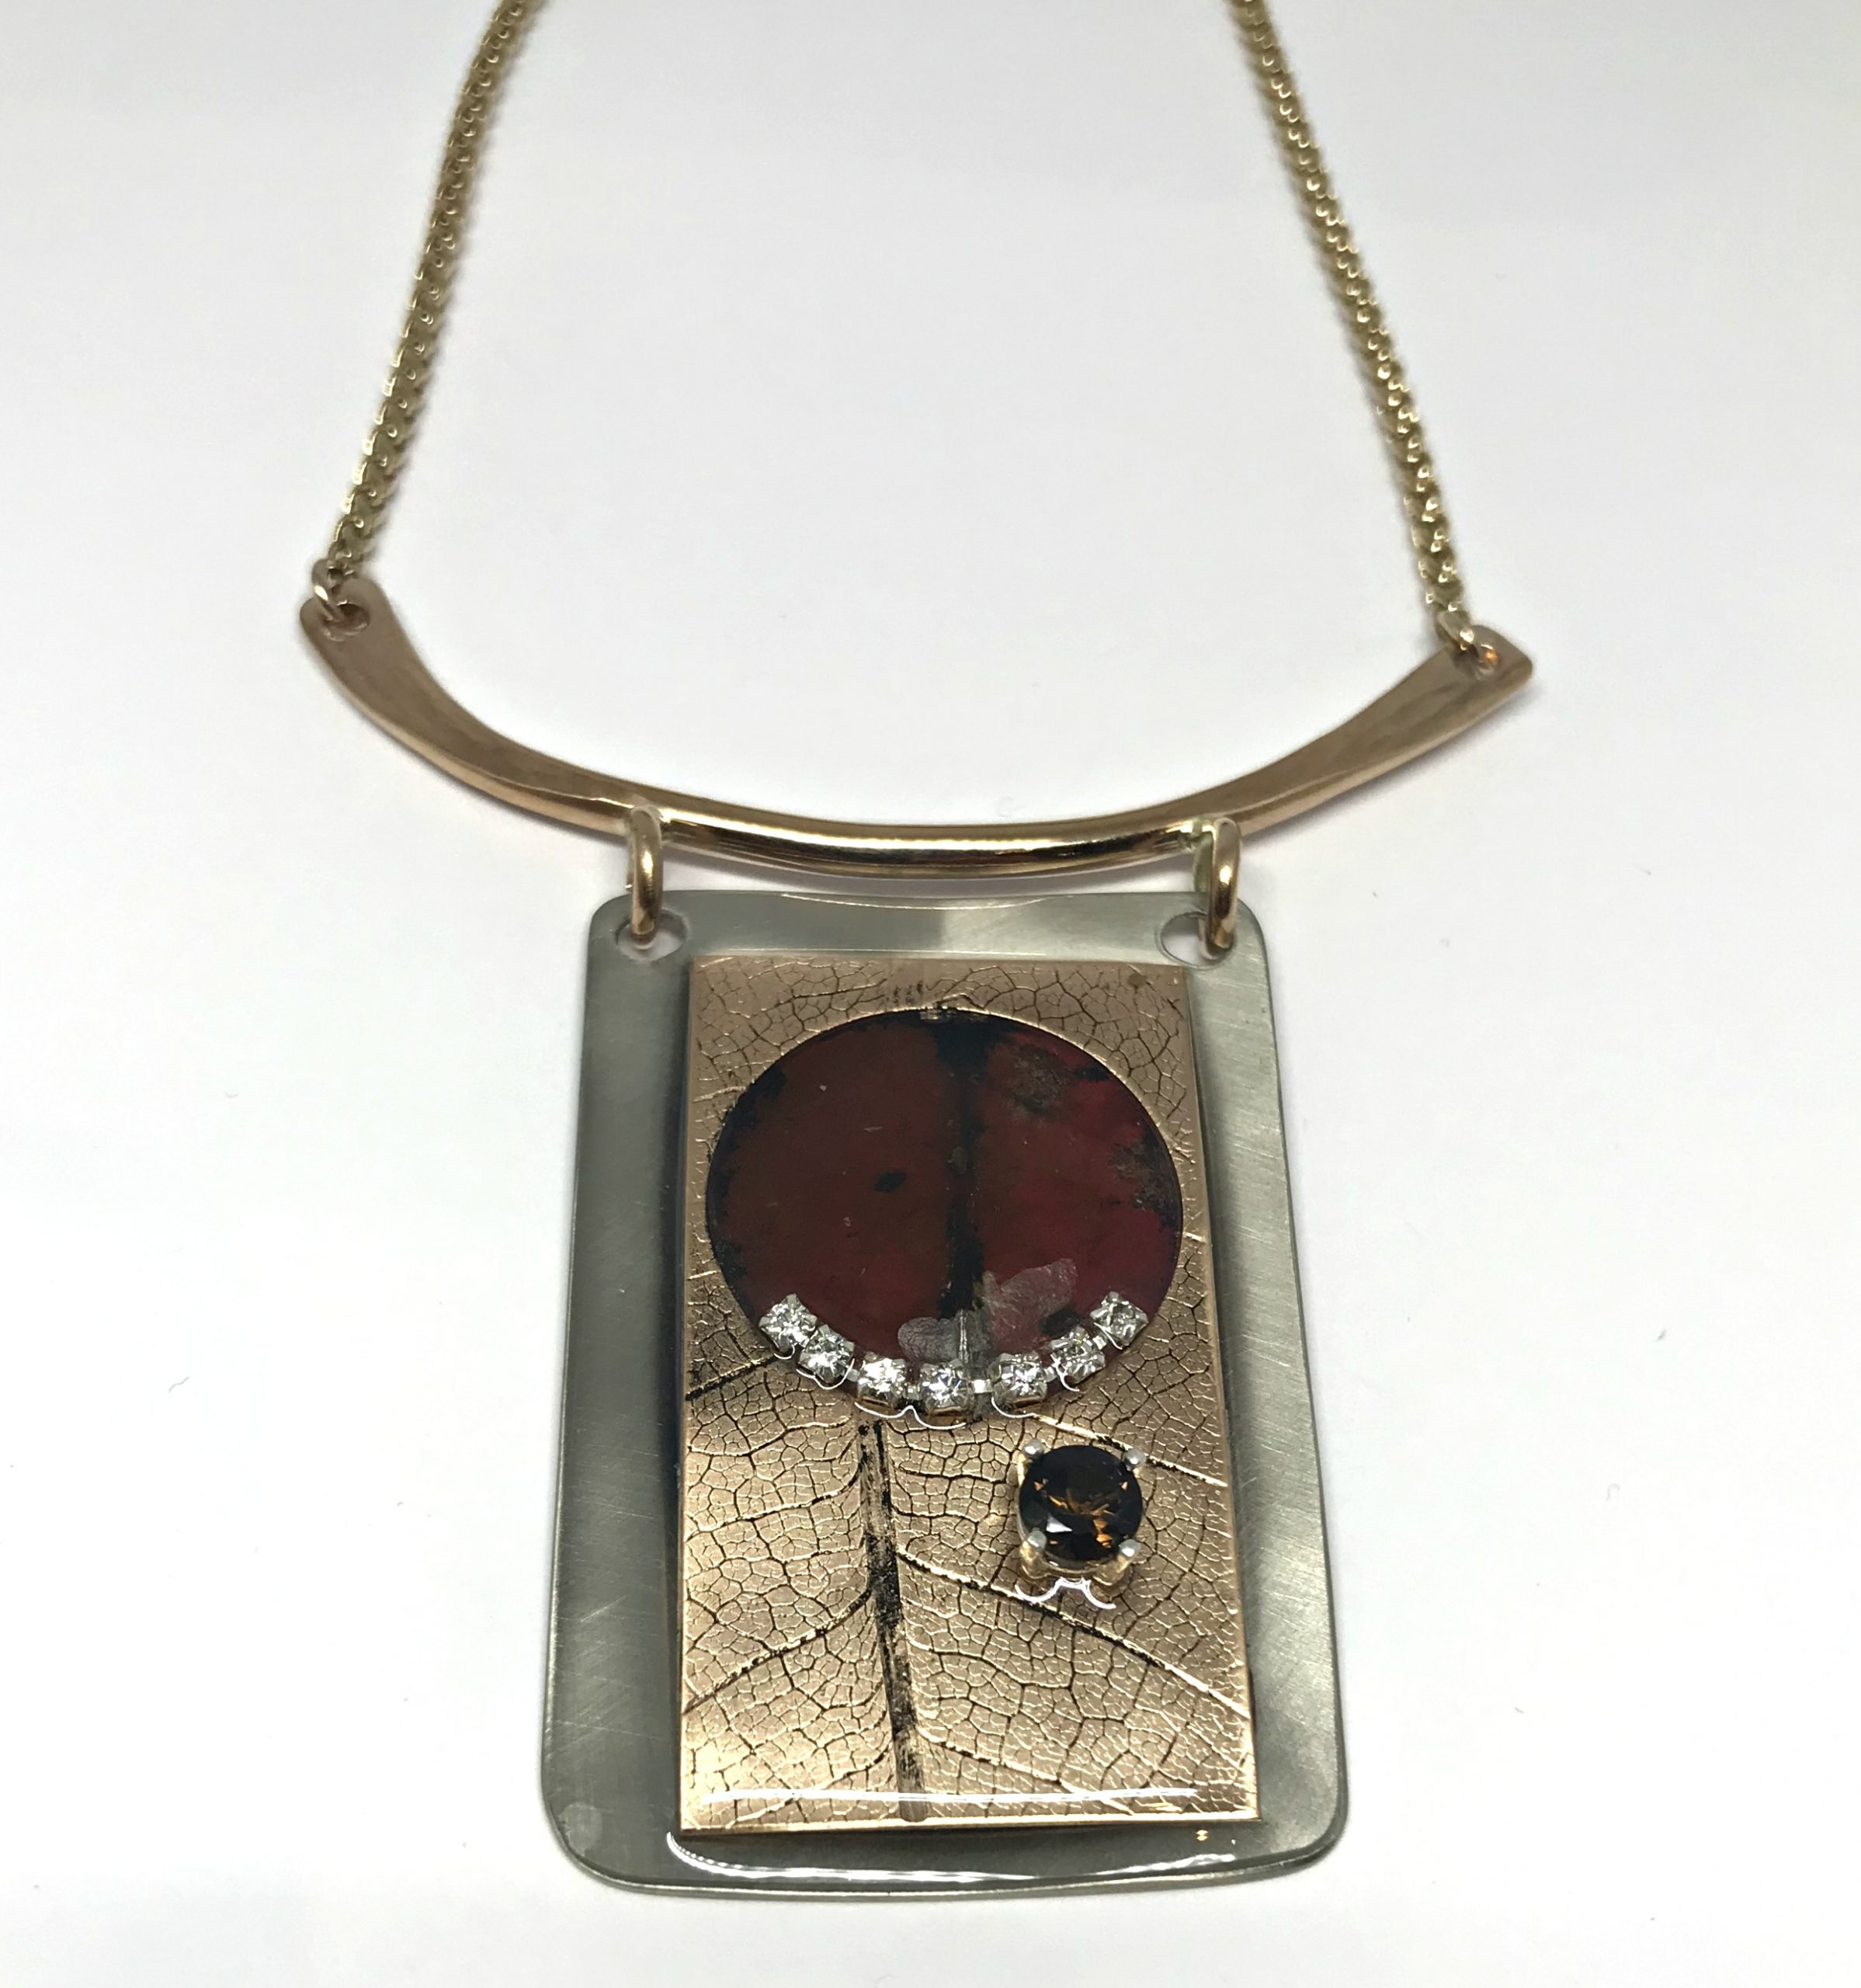 Fallen Leaf Necklace by Karyn Chopik | Effusion Art Gallery + Cast Glass Studio, Invermere BC